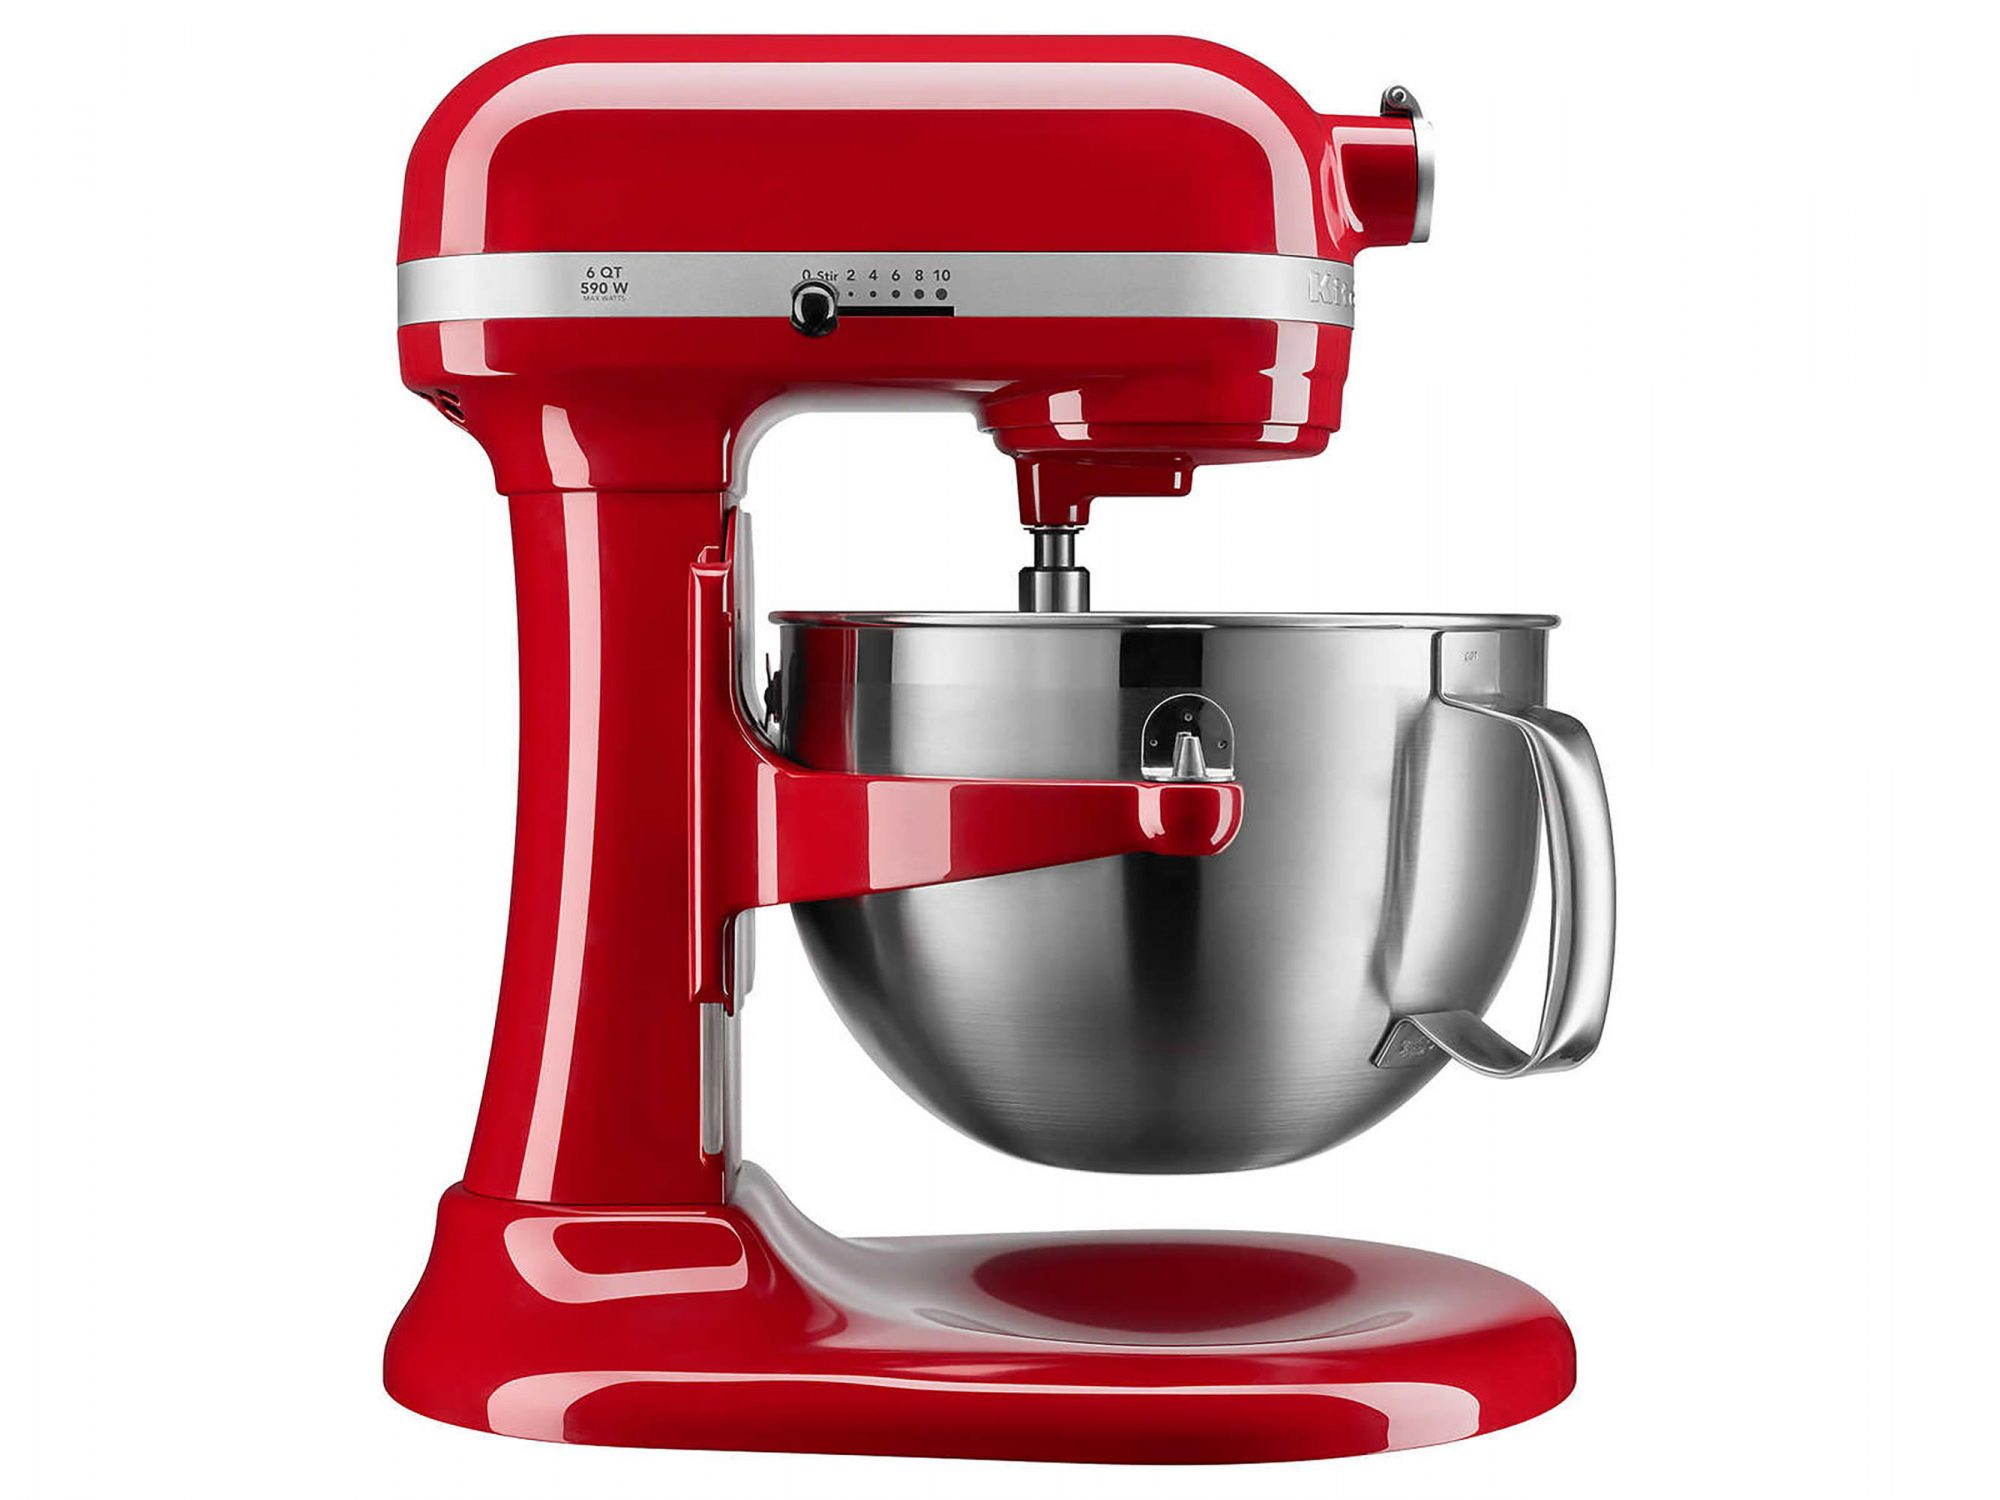 6 November Sale Items Every Costco Shopper Should Know About 1811w-Kitchen-Aid-Stand-Mixer